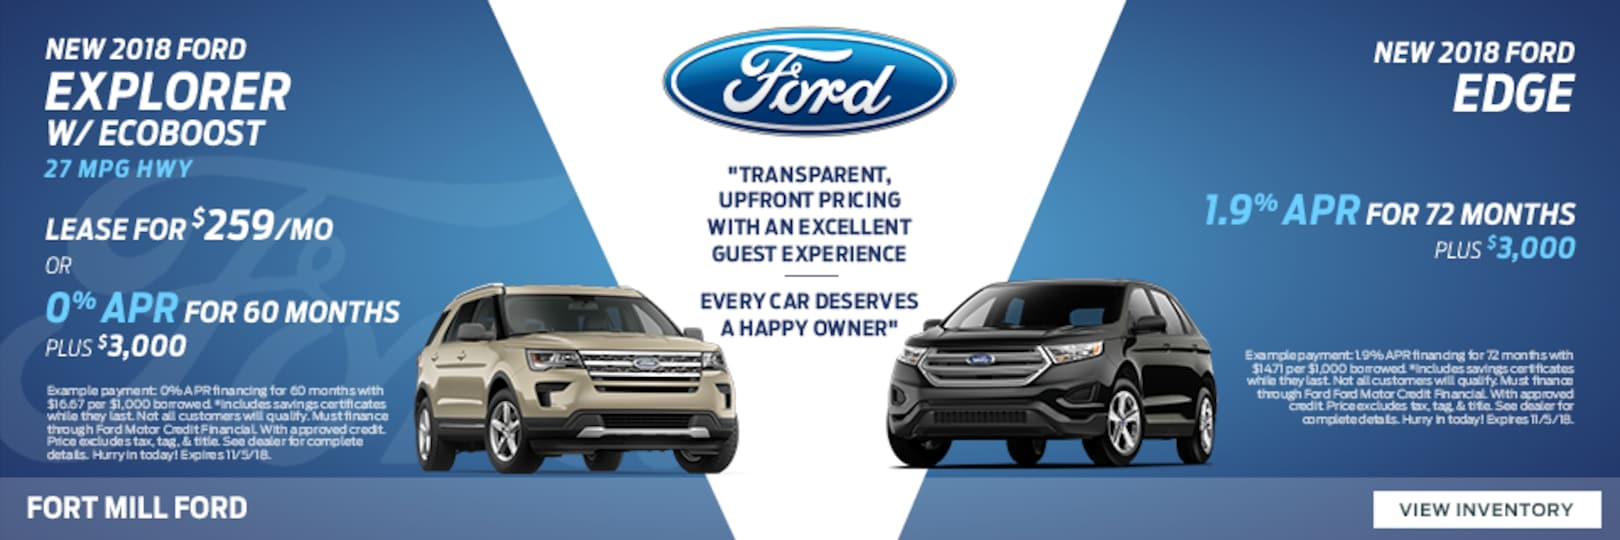 Fort Mill Ford New Used Car Dealership Fort Mill SC - Tindol ford car show